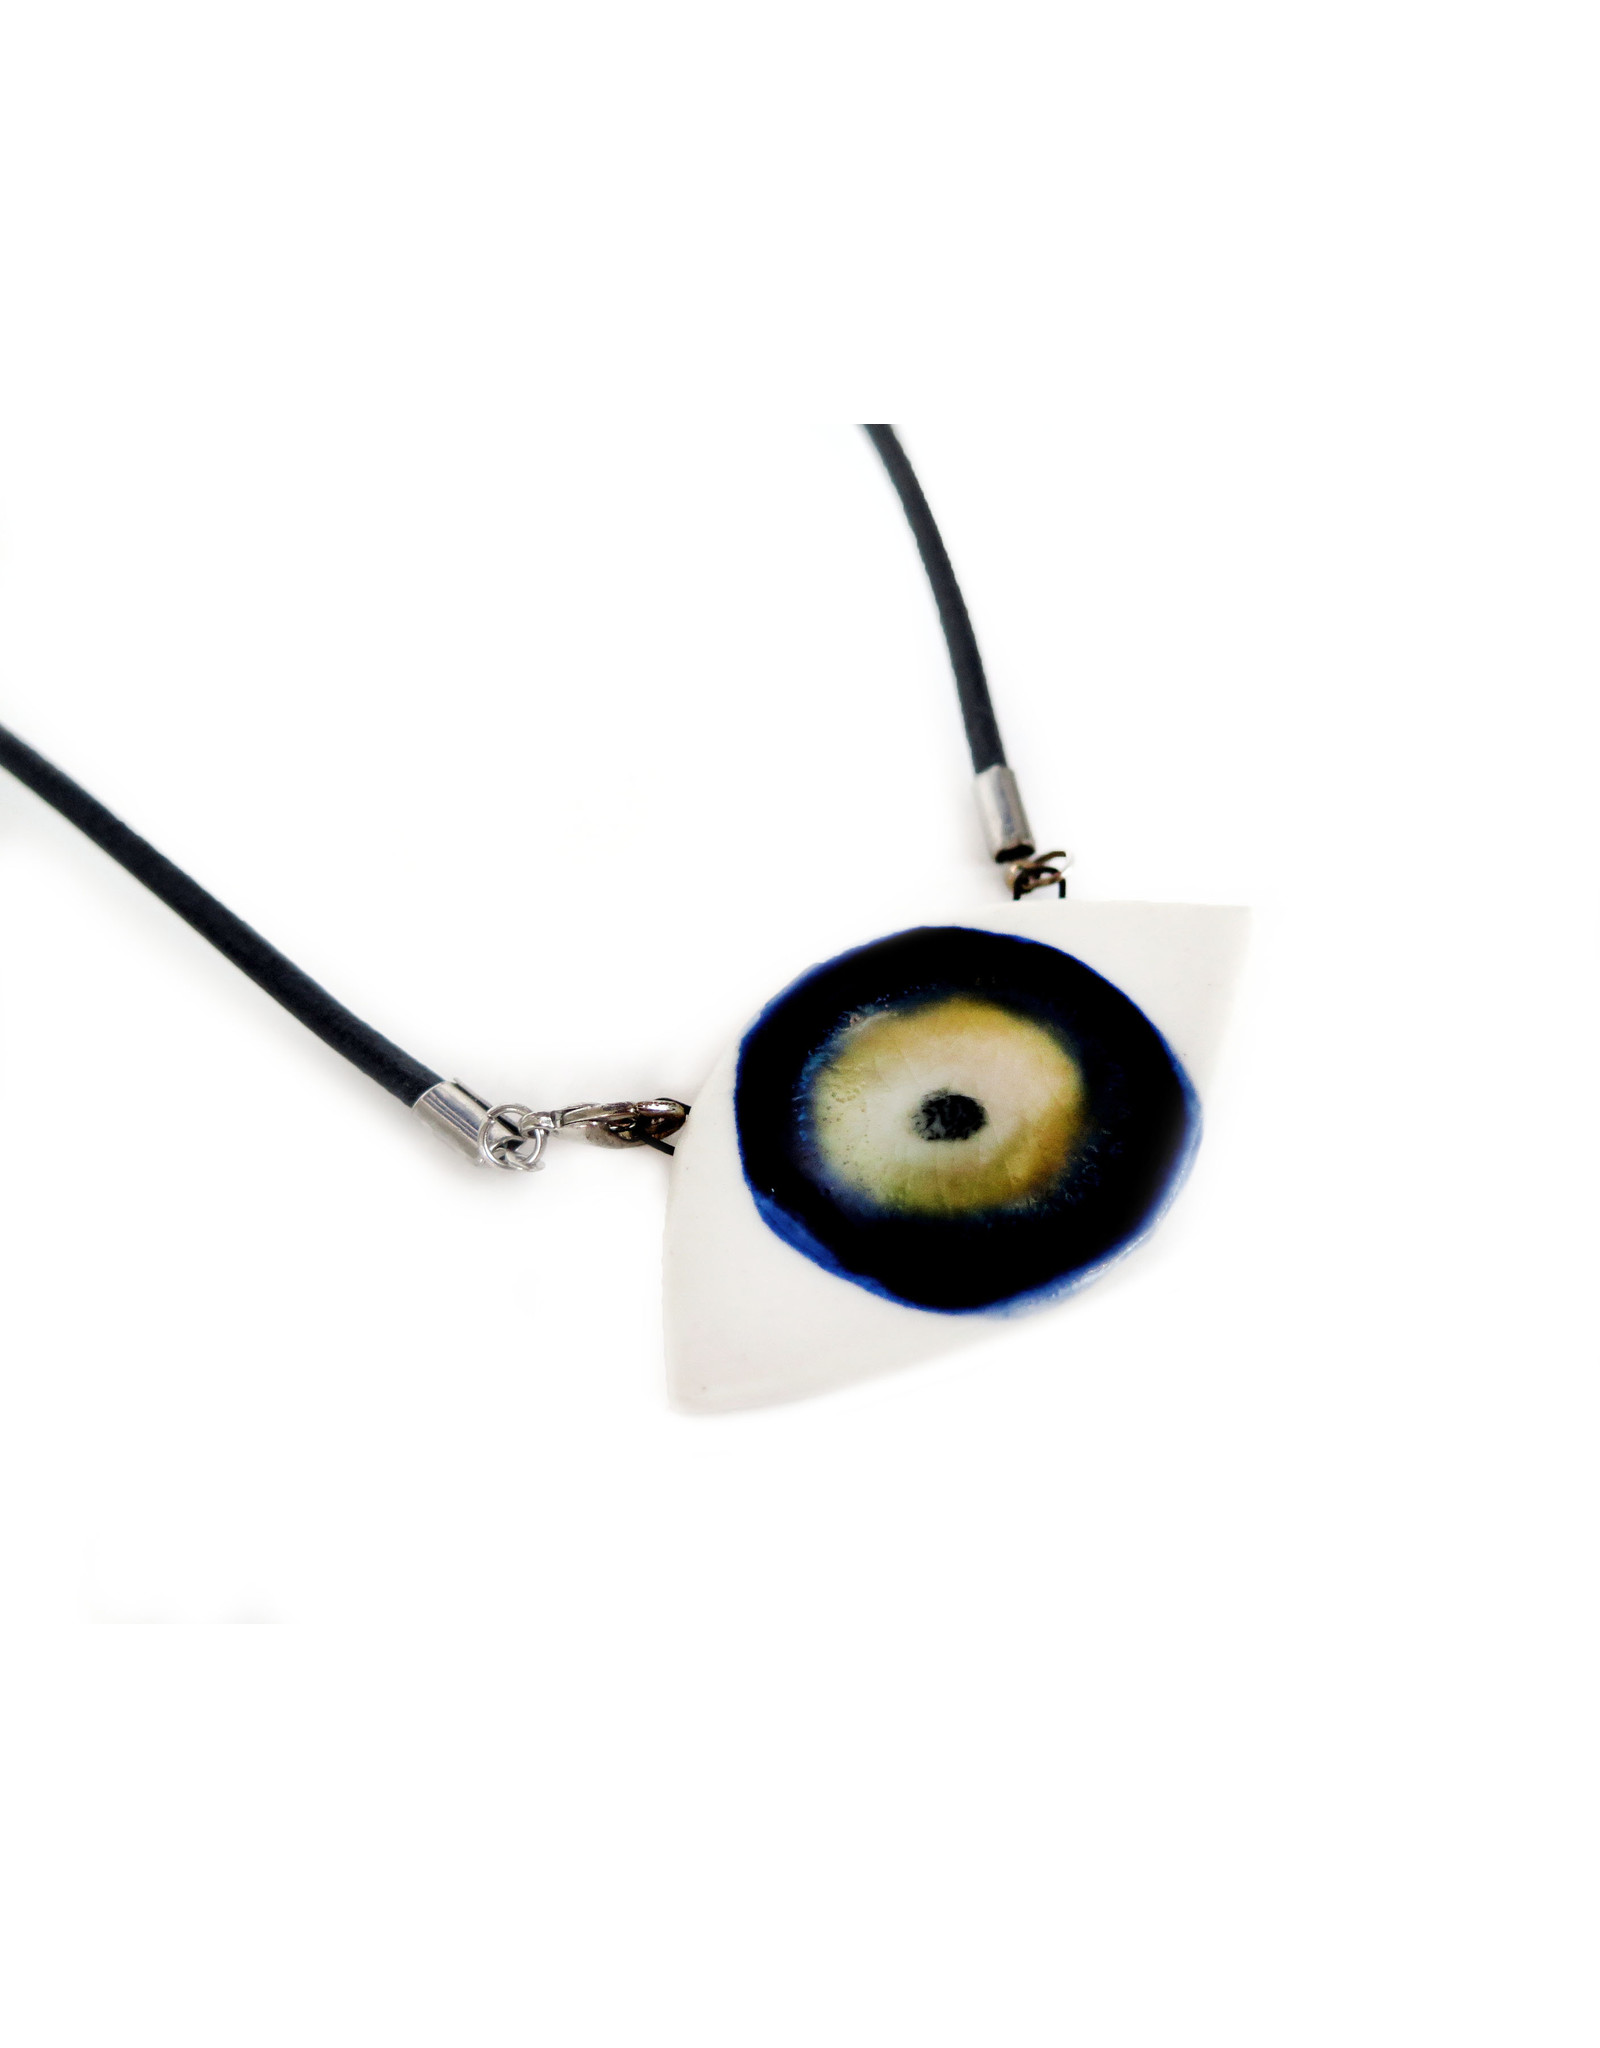 Blue/Hazel Porcelain Evil Eye Necklace, Larissa Rolley